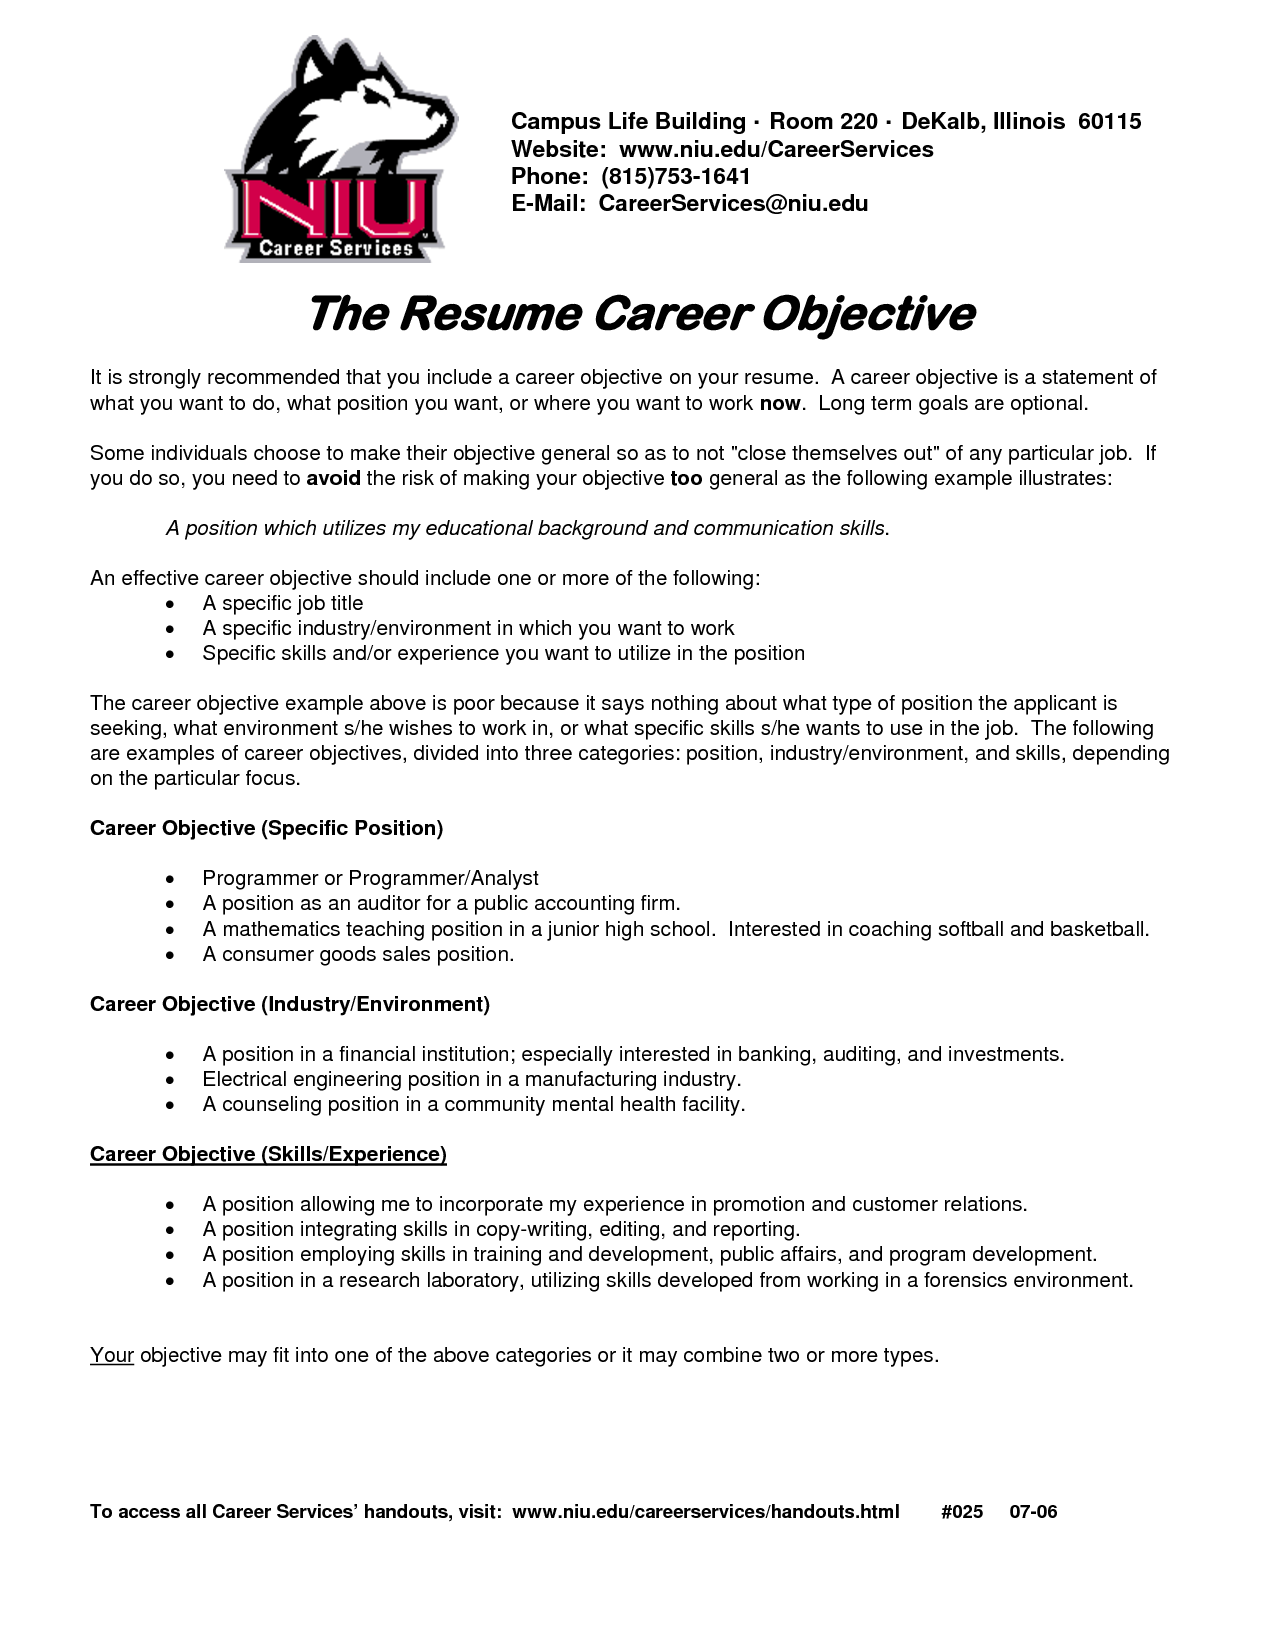 12 General Career Objective Resume Samplebusinessresume Com